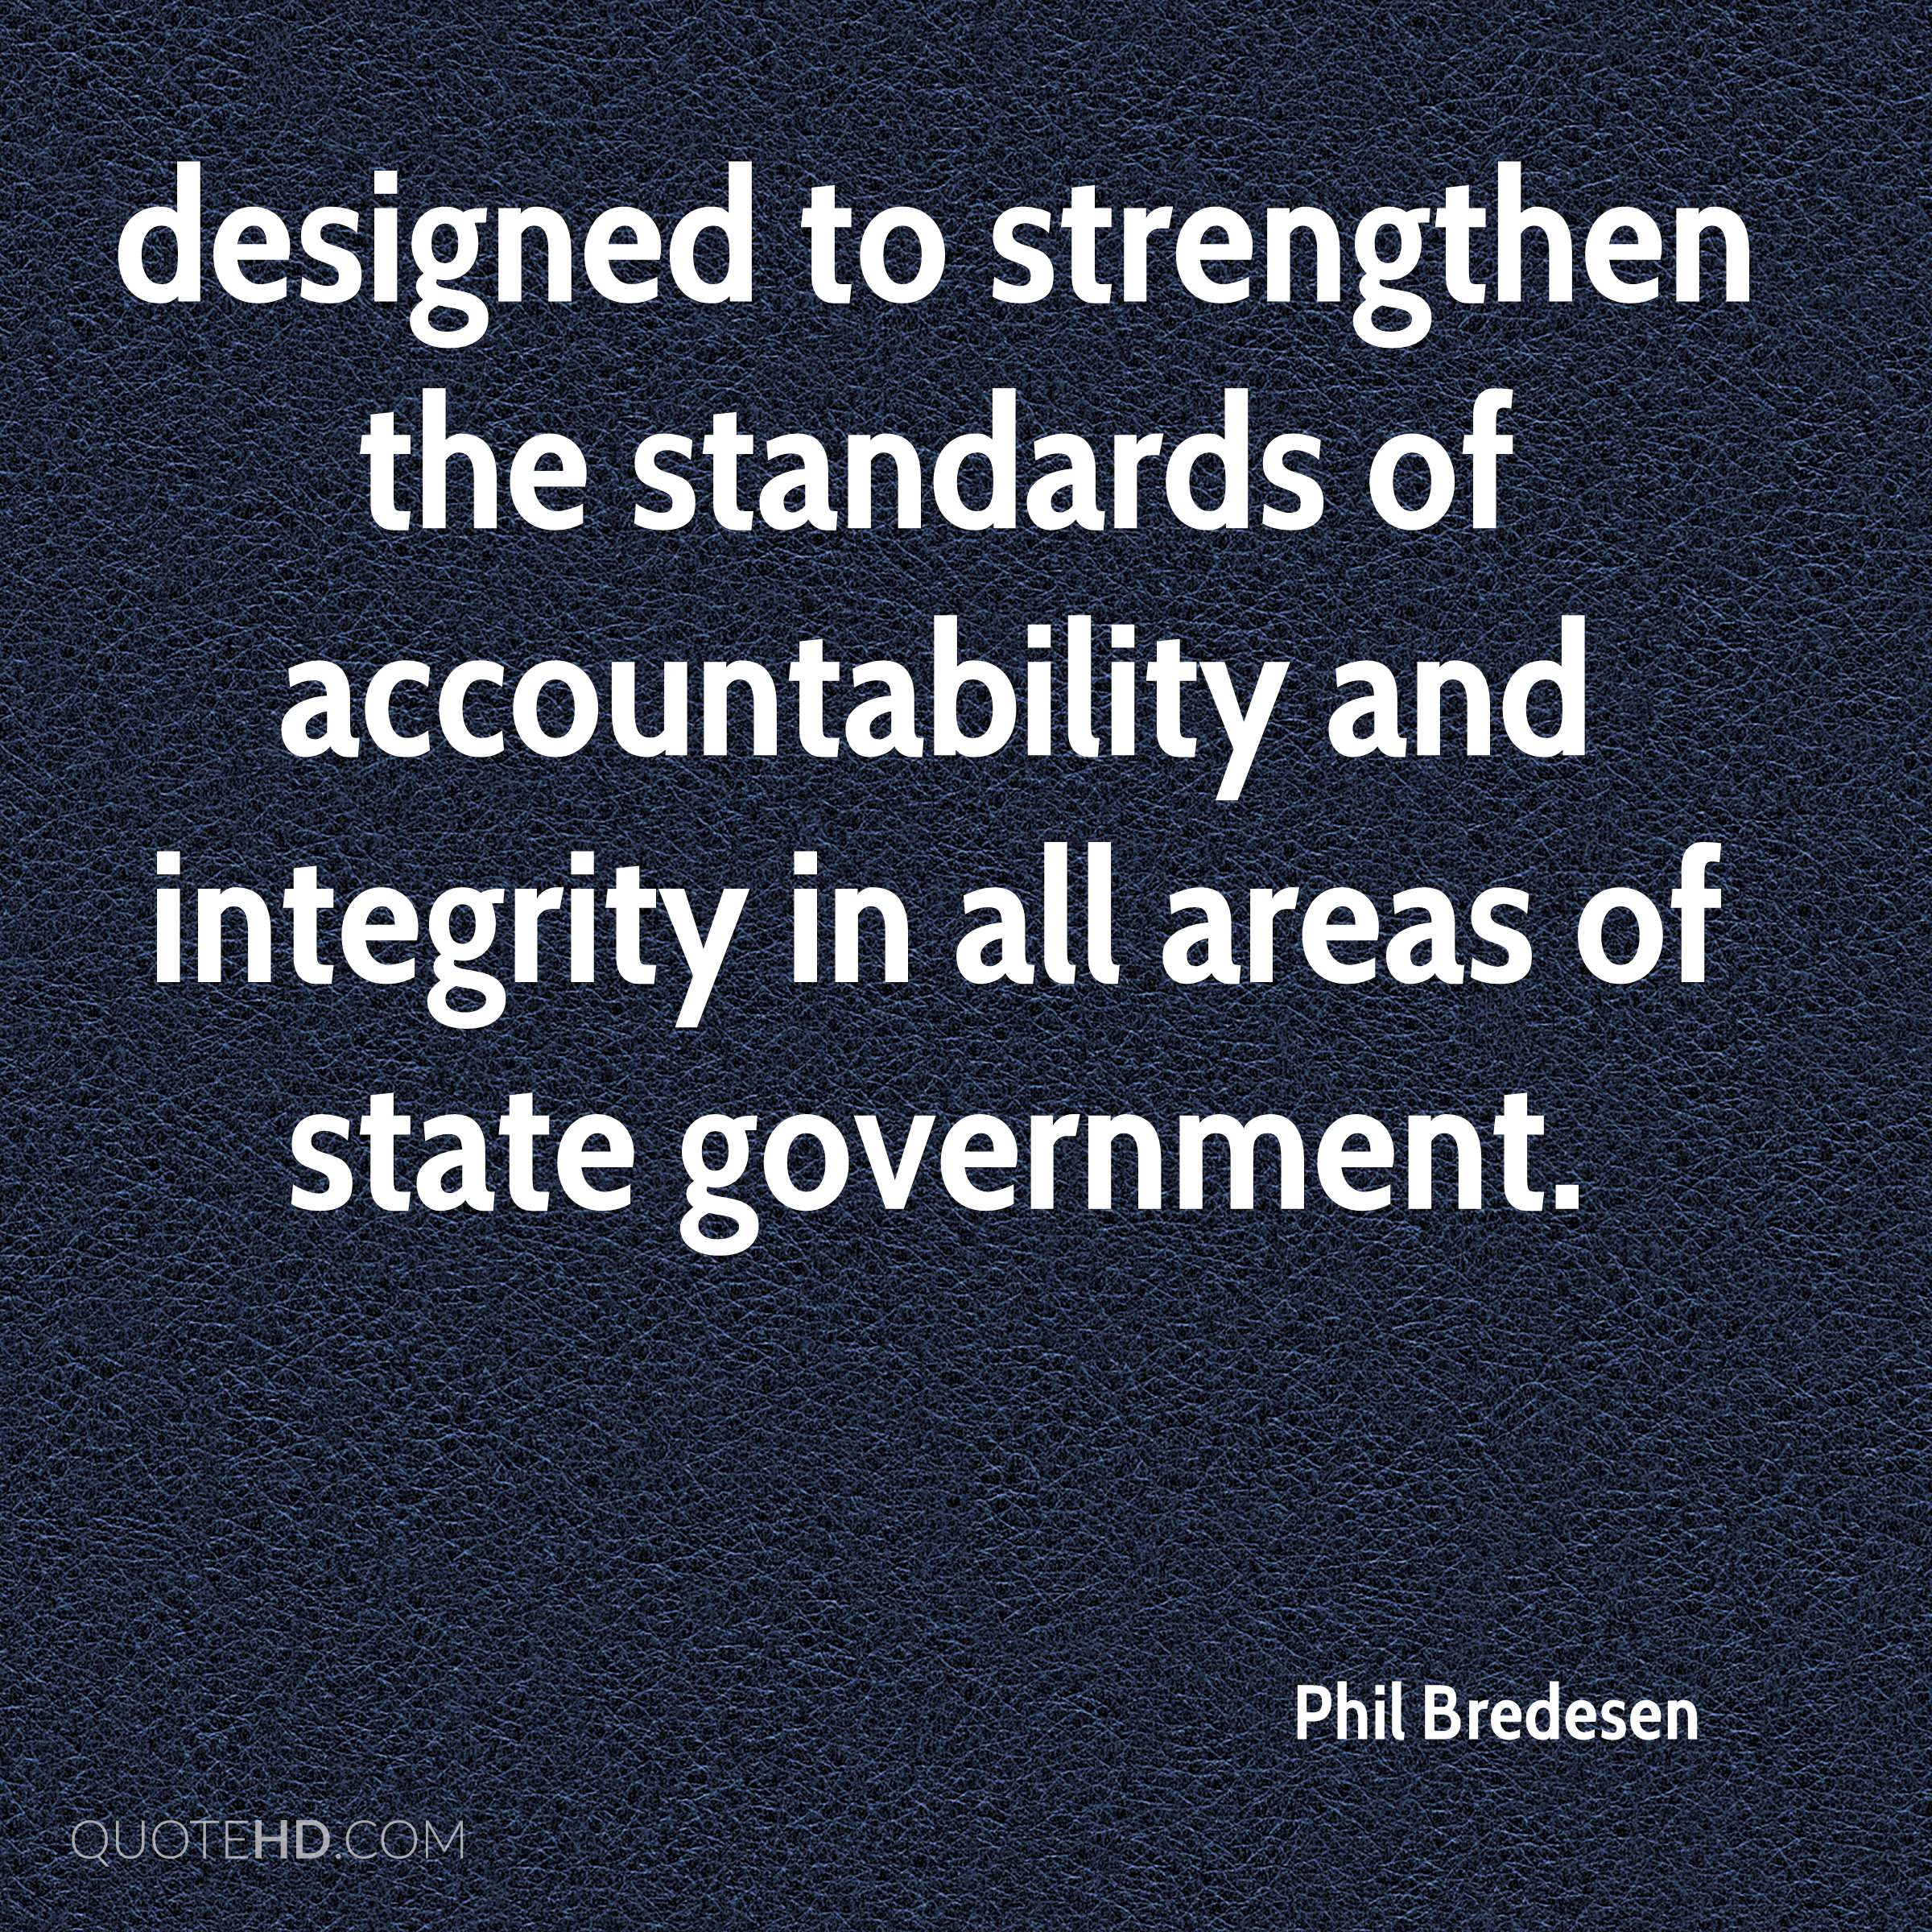 designed to strengthen the standards of accountability and integrity in all areas of state government.